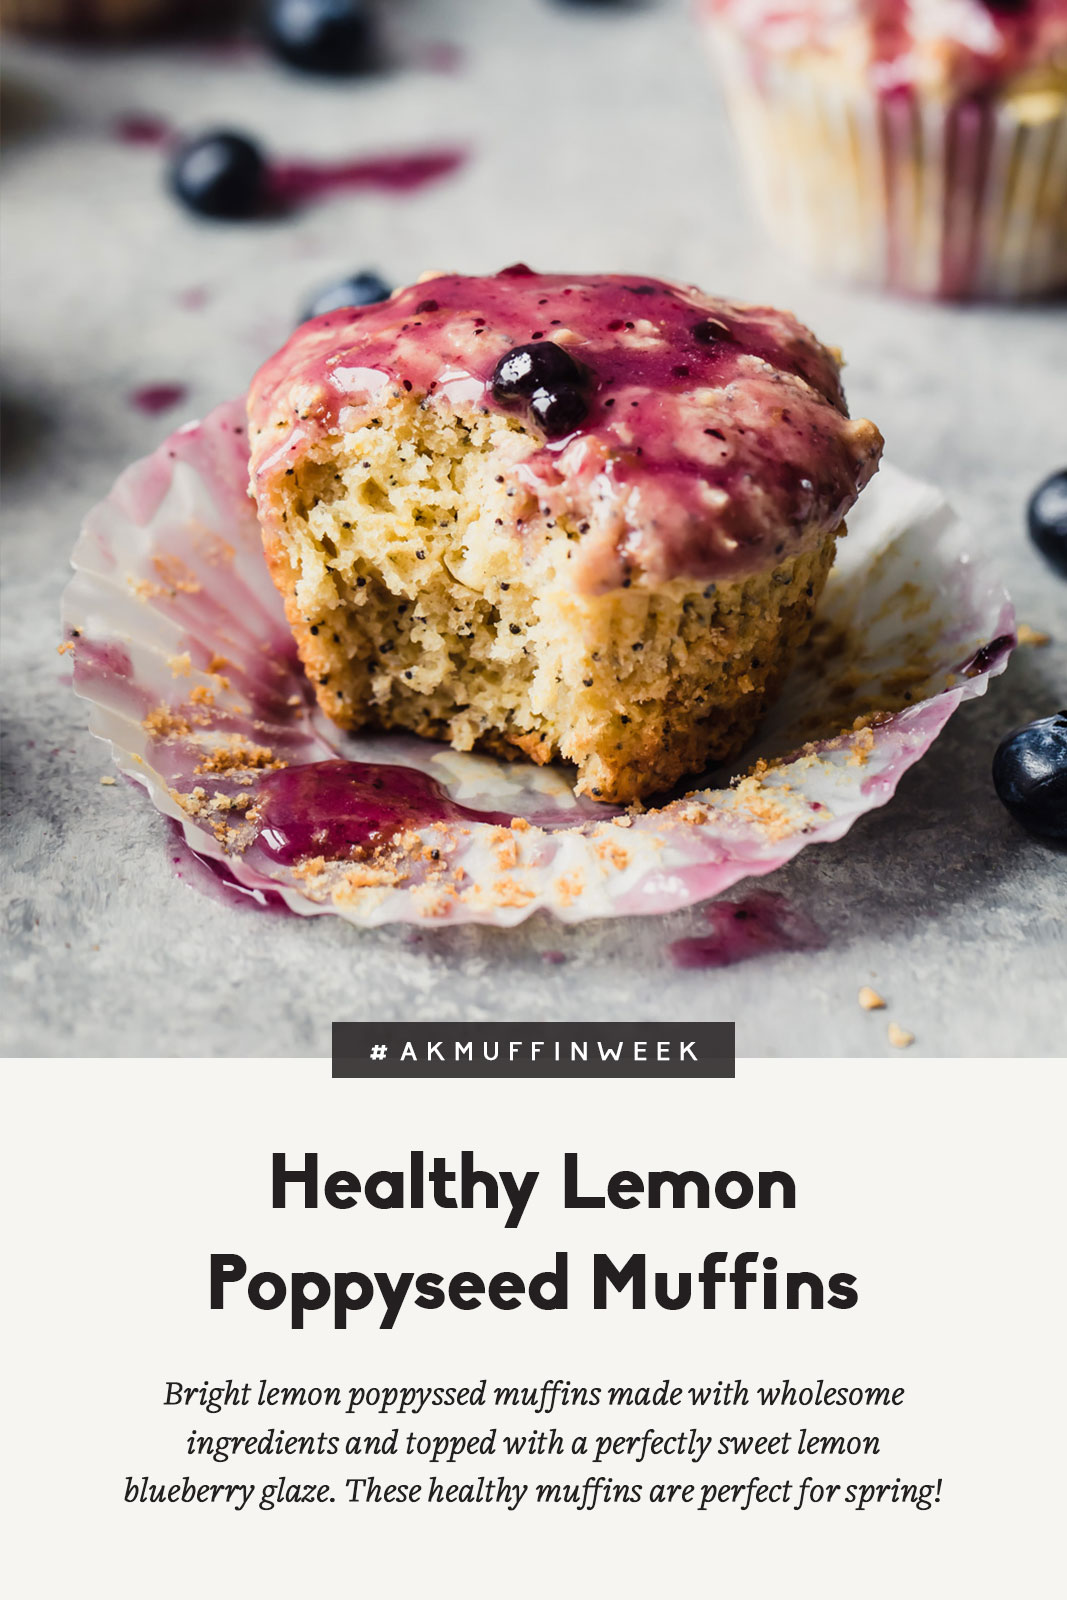 Lemon-Poppyseed-Muffin-Week.jpg